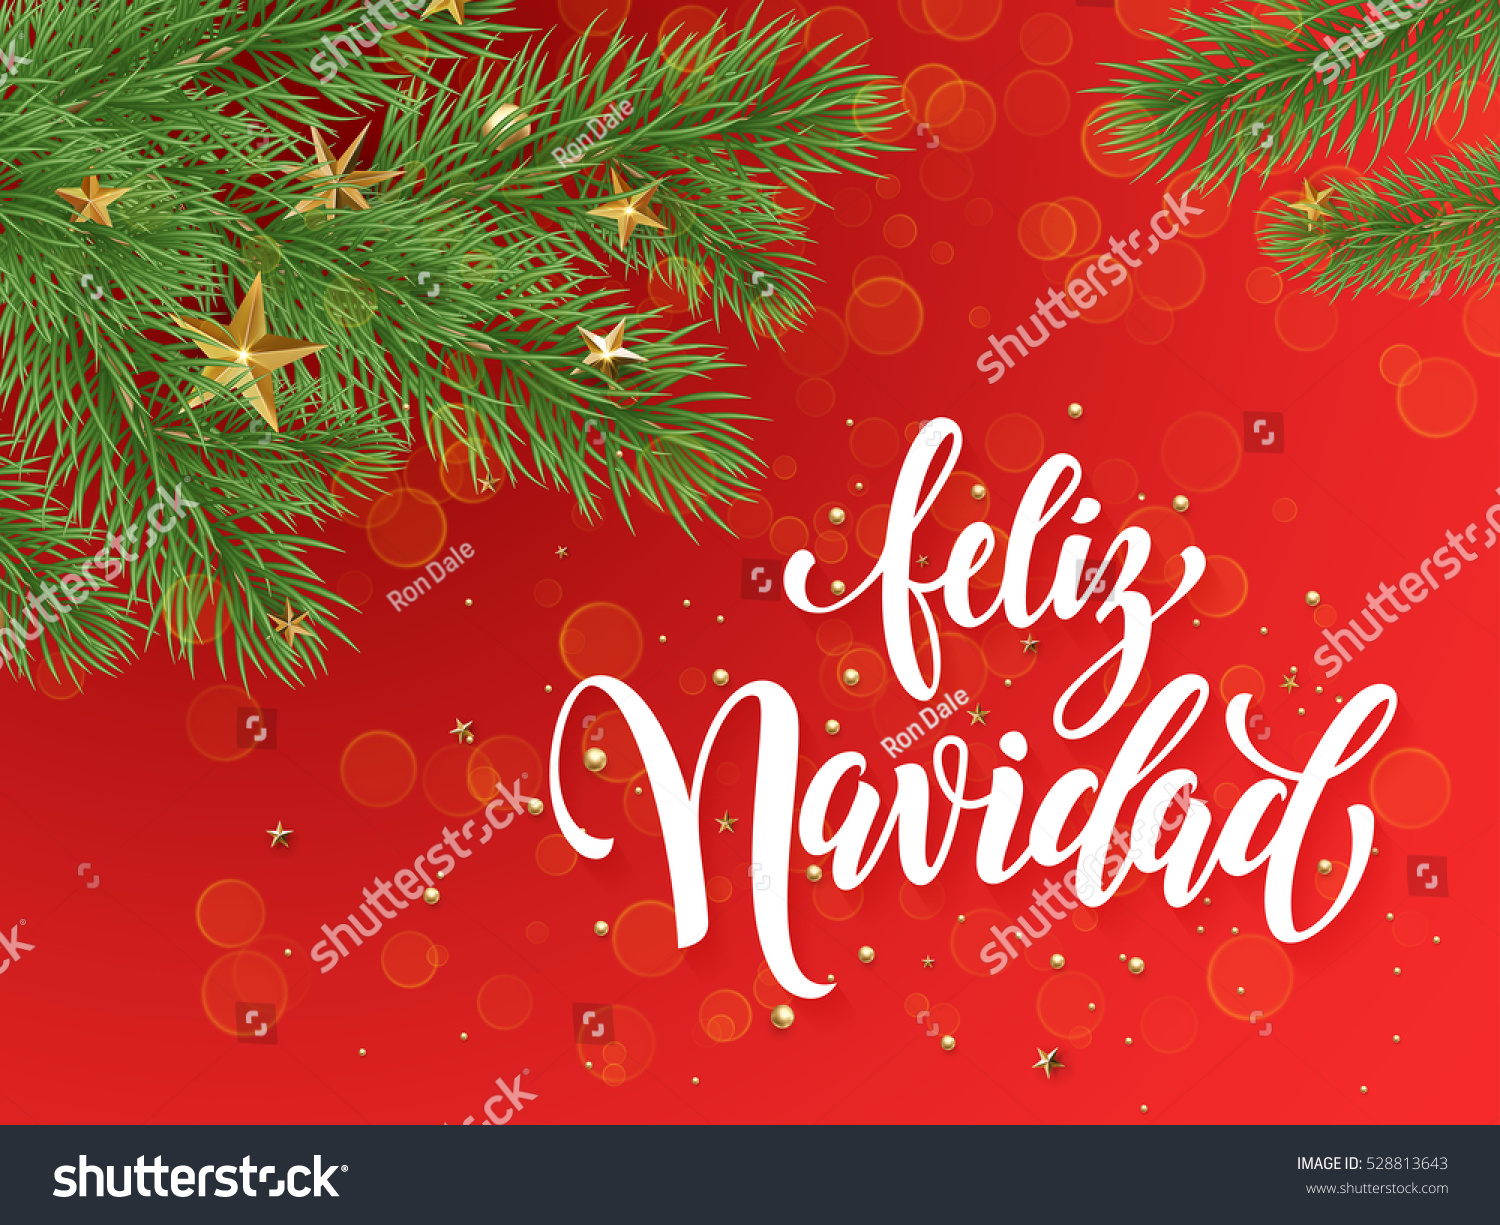 spanish merry christmas feliz navidad text greeting calligraphy lettering decorative red background with golden christmas